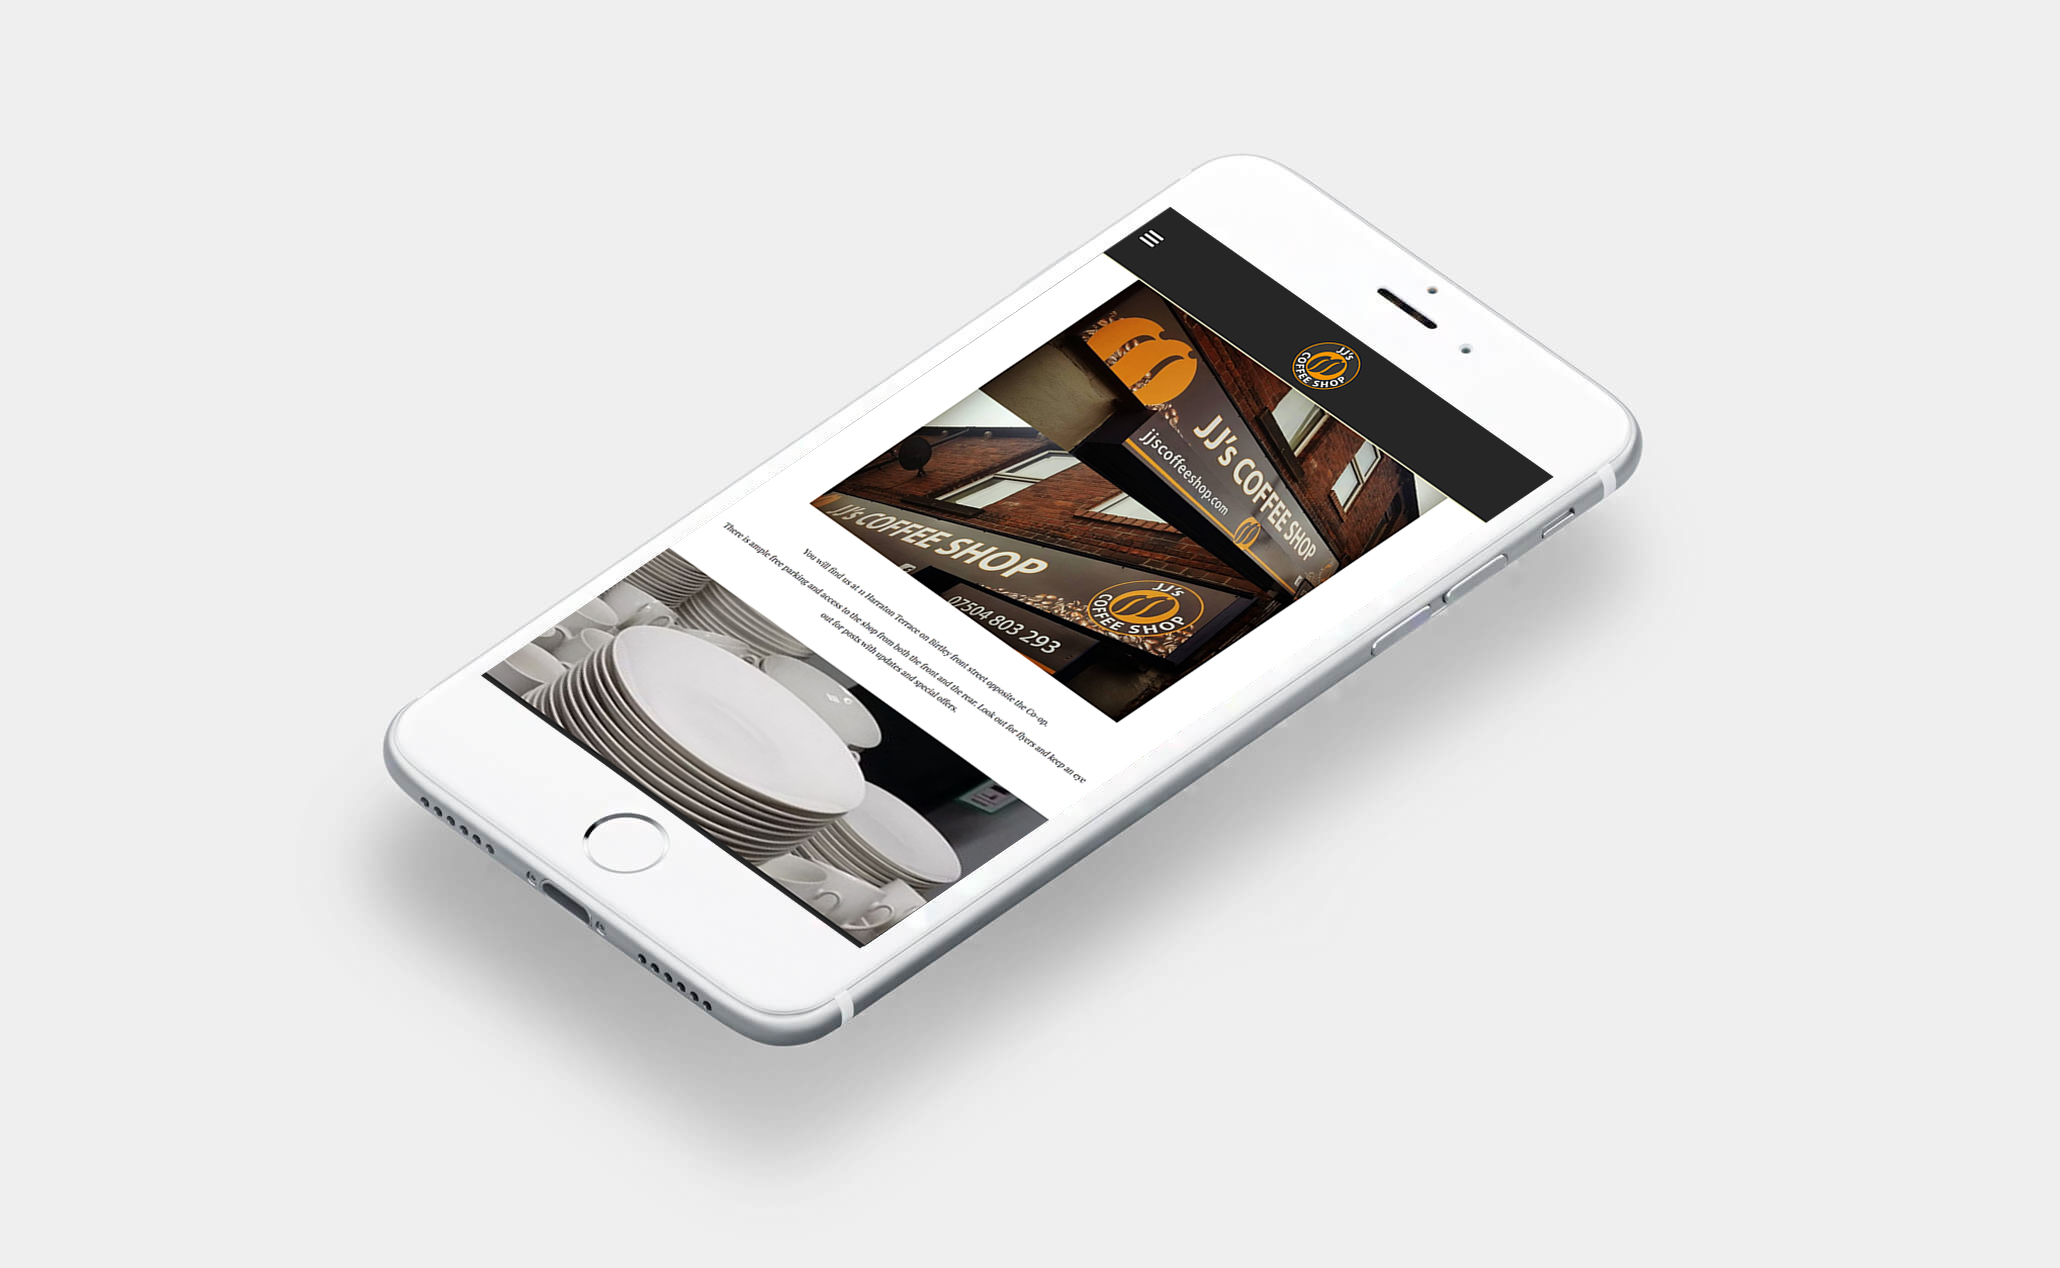 <p>JJ's located on Birtley High Street are a fantastic local coffee shop who required a simple website turned around very quickly for their opening. Working closely with the client we were able to produce a minimalist 1 page website in one day with hosting and new email address.</p>